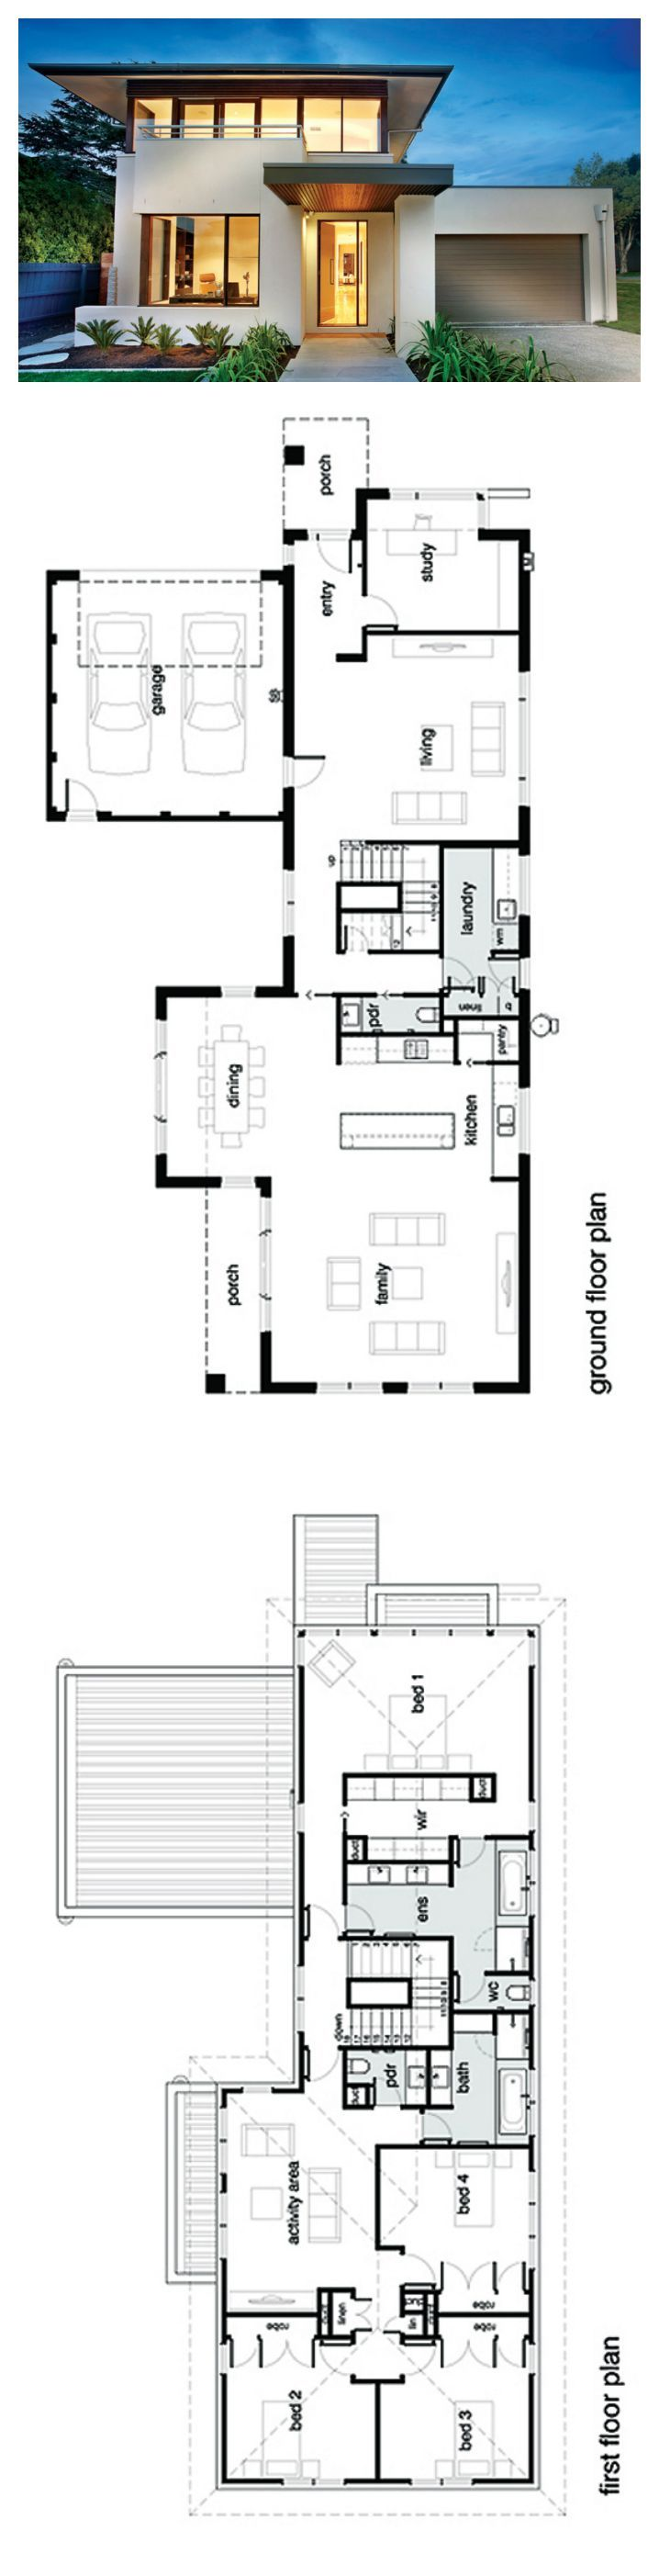 Best 25 modern house plans ideas on pinterest modern for Home floor design